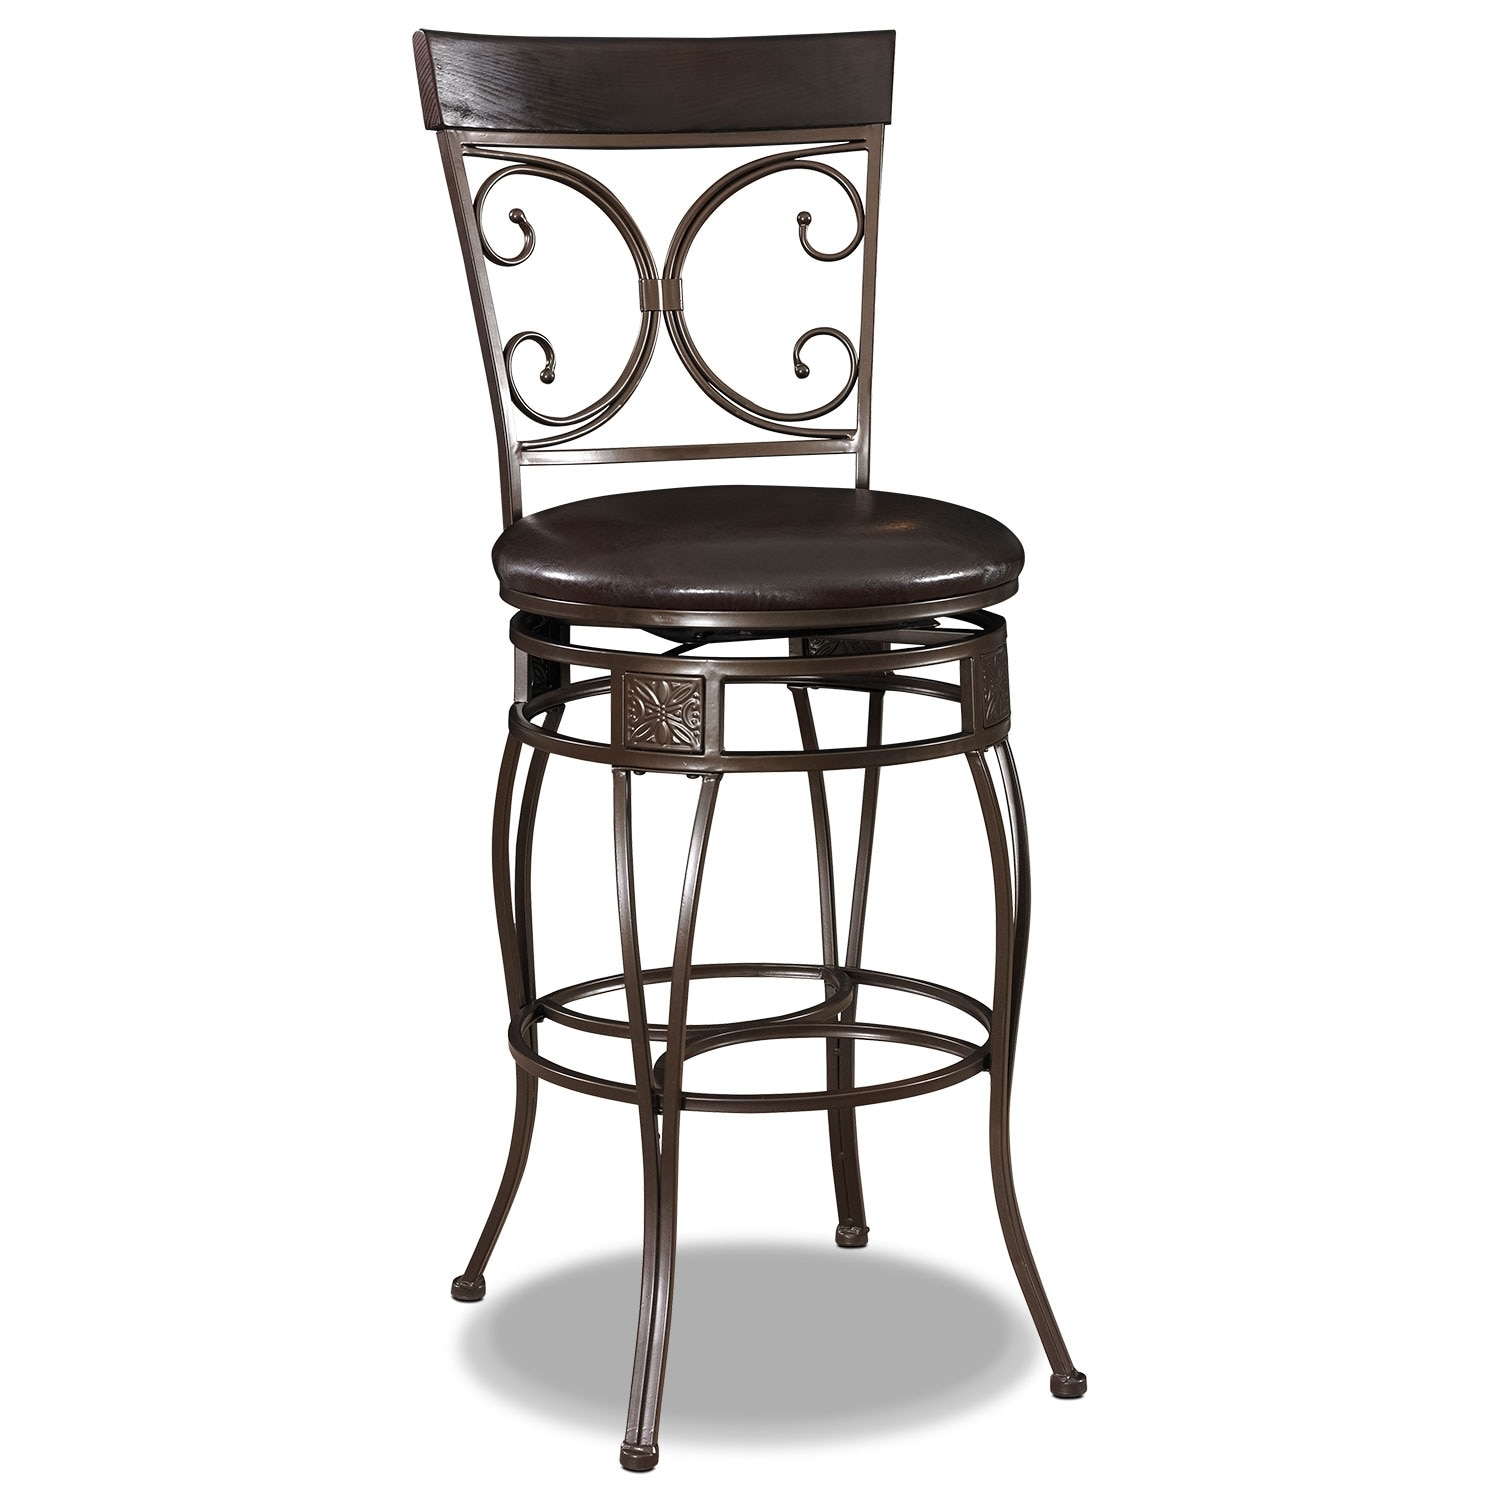 Grandview Barstool - Black